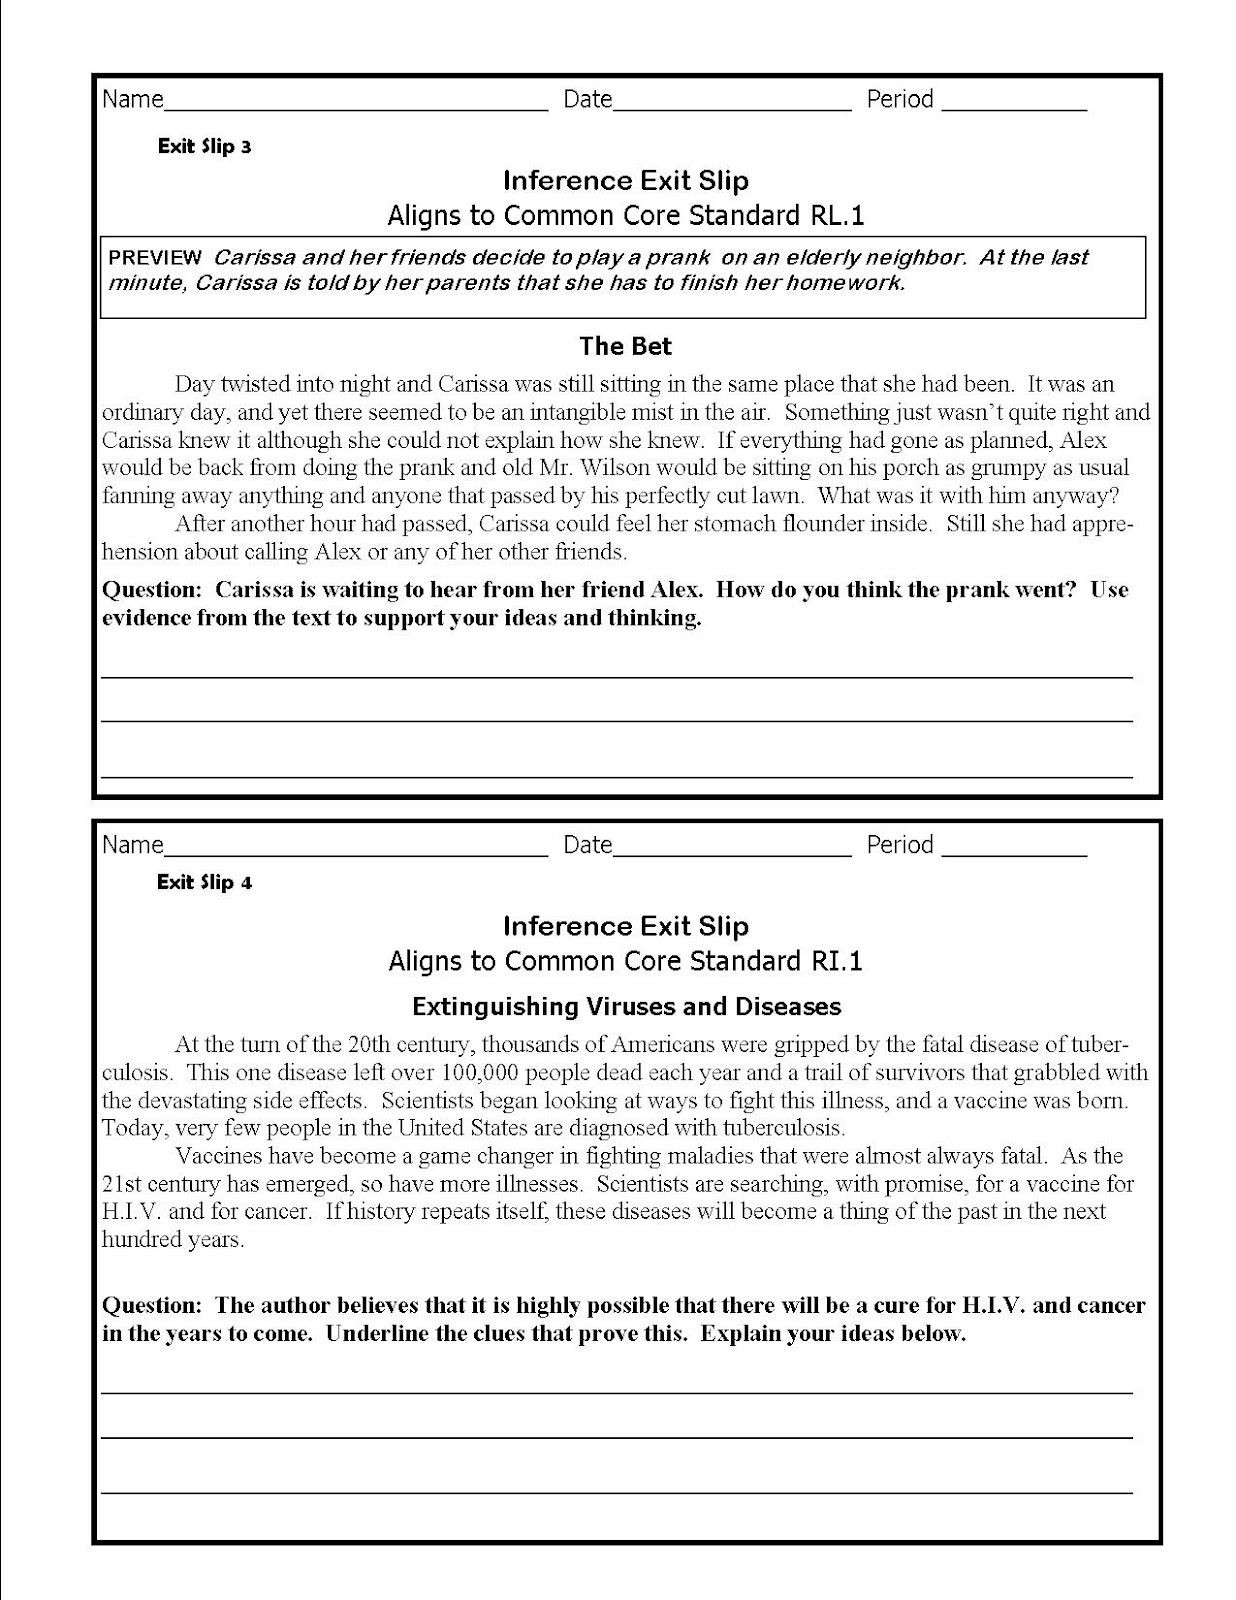 Middle School Inference Worksheets the Lesson Cloud Middle School Mon Core Inference Exit